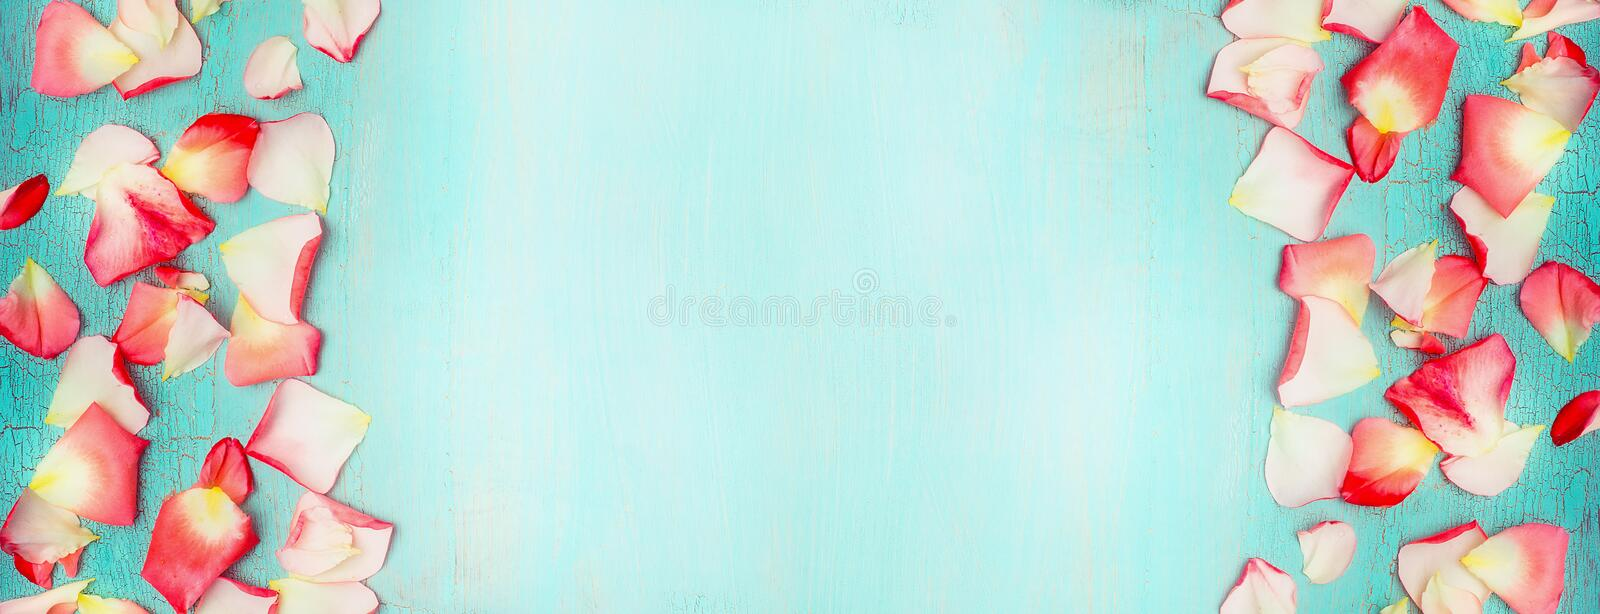 Floral banner with flowers petal on turquoise blue shabby chic background, top view stock photos